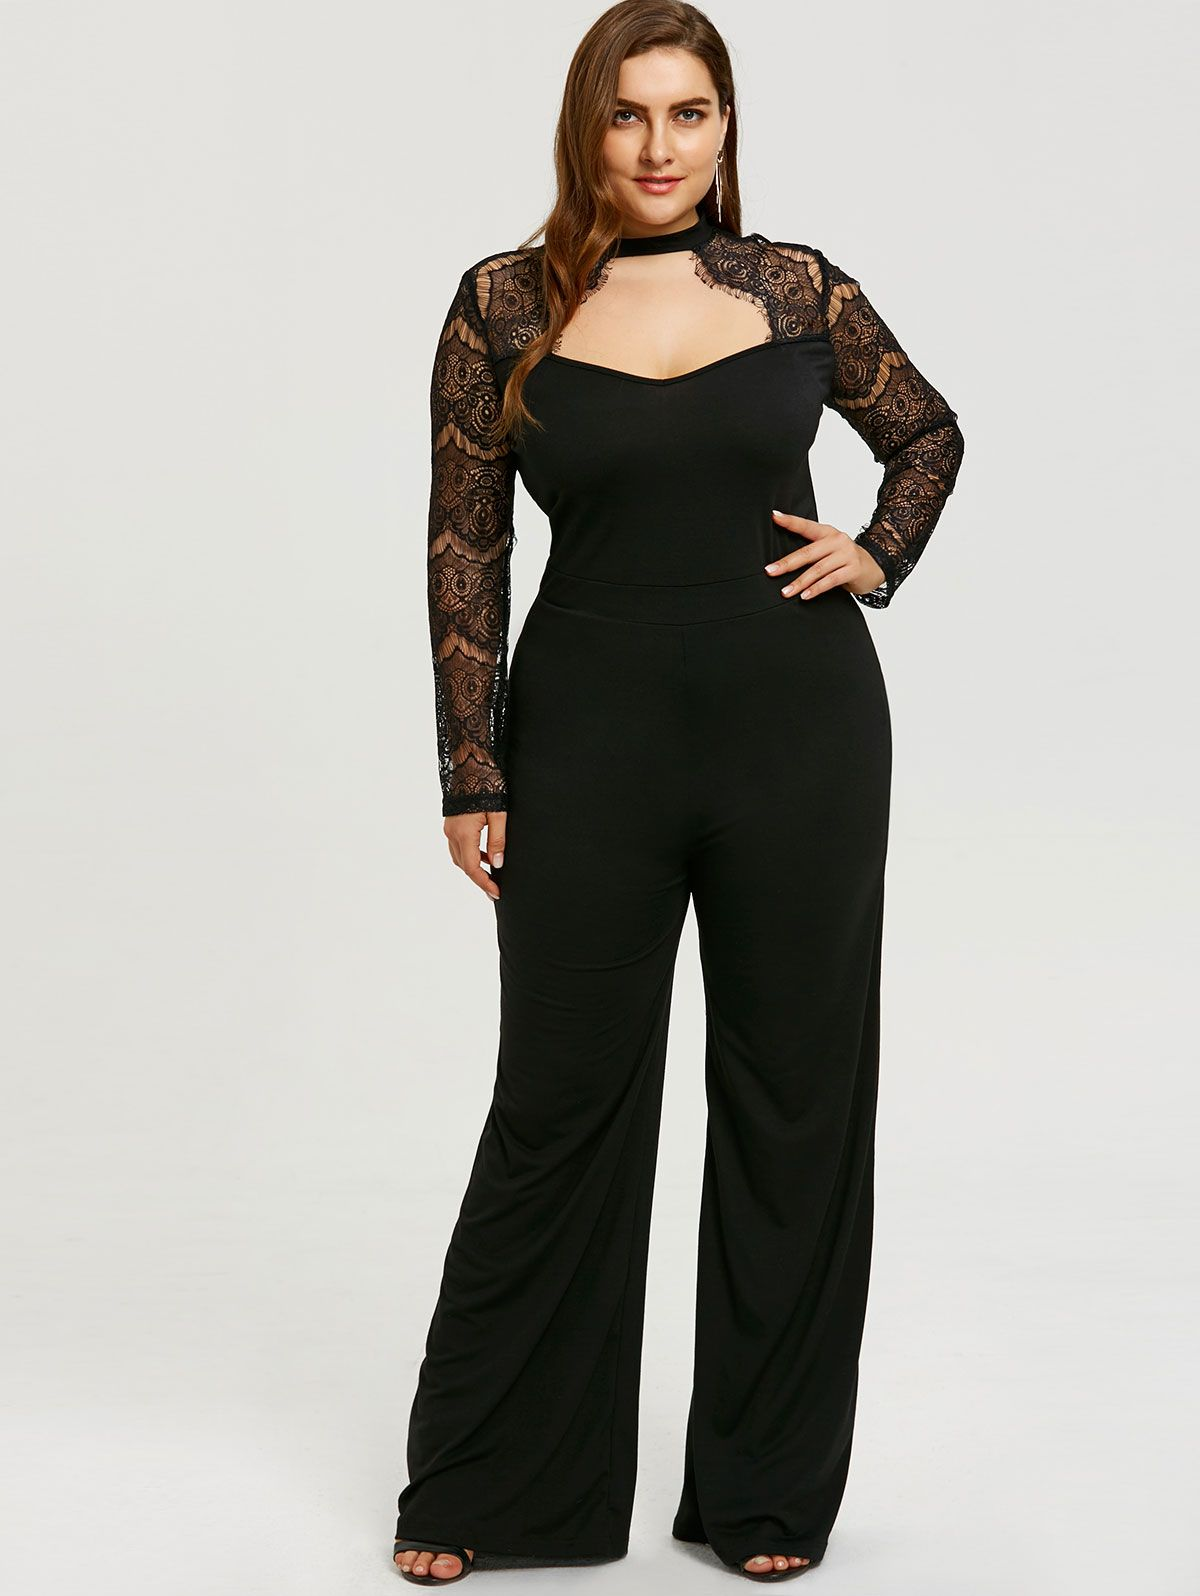 f0053aa5f28 Up to 32% off. Free shipping worldwide.Lace Sleeve Plus Size Cut Out  Jumpsuit. plussize  plussizefashion  spring  springfashion  bottoms   blacklove  womens ...